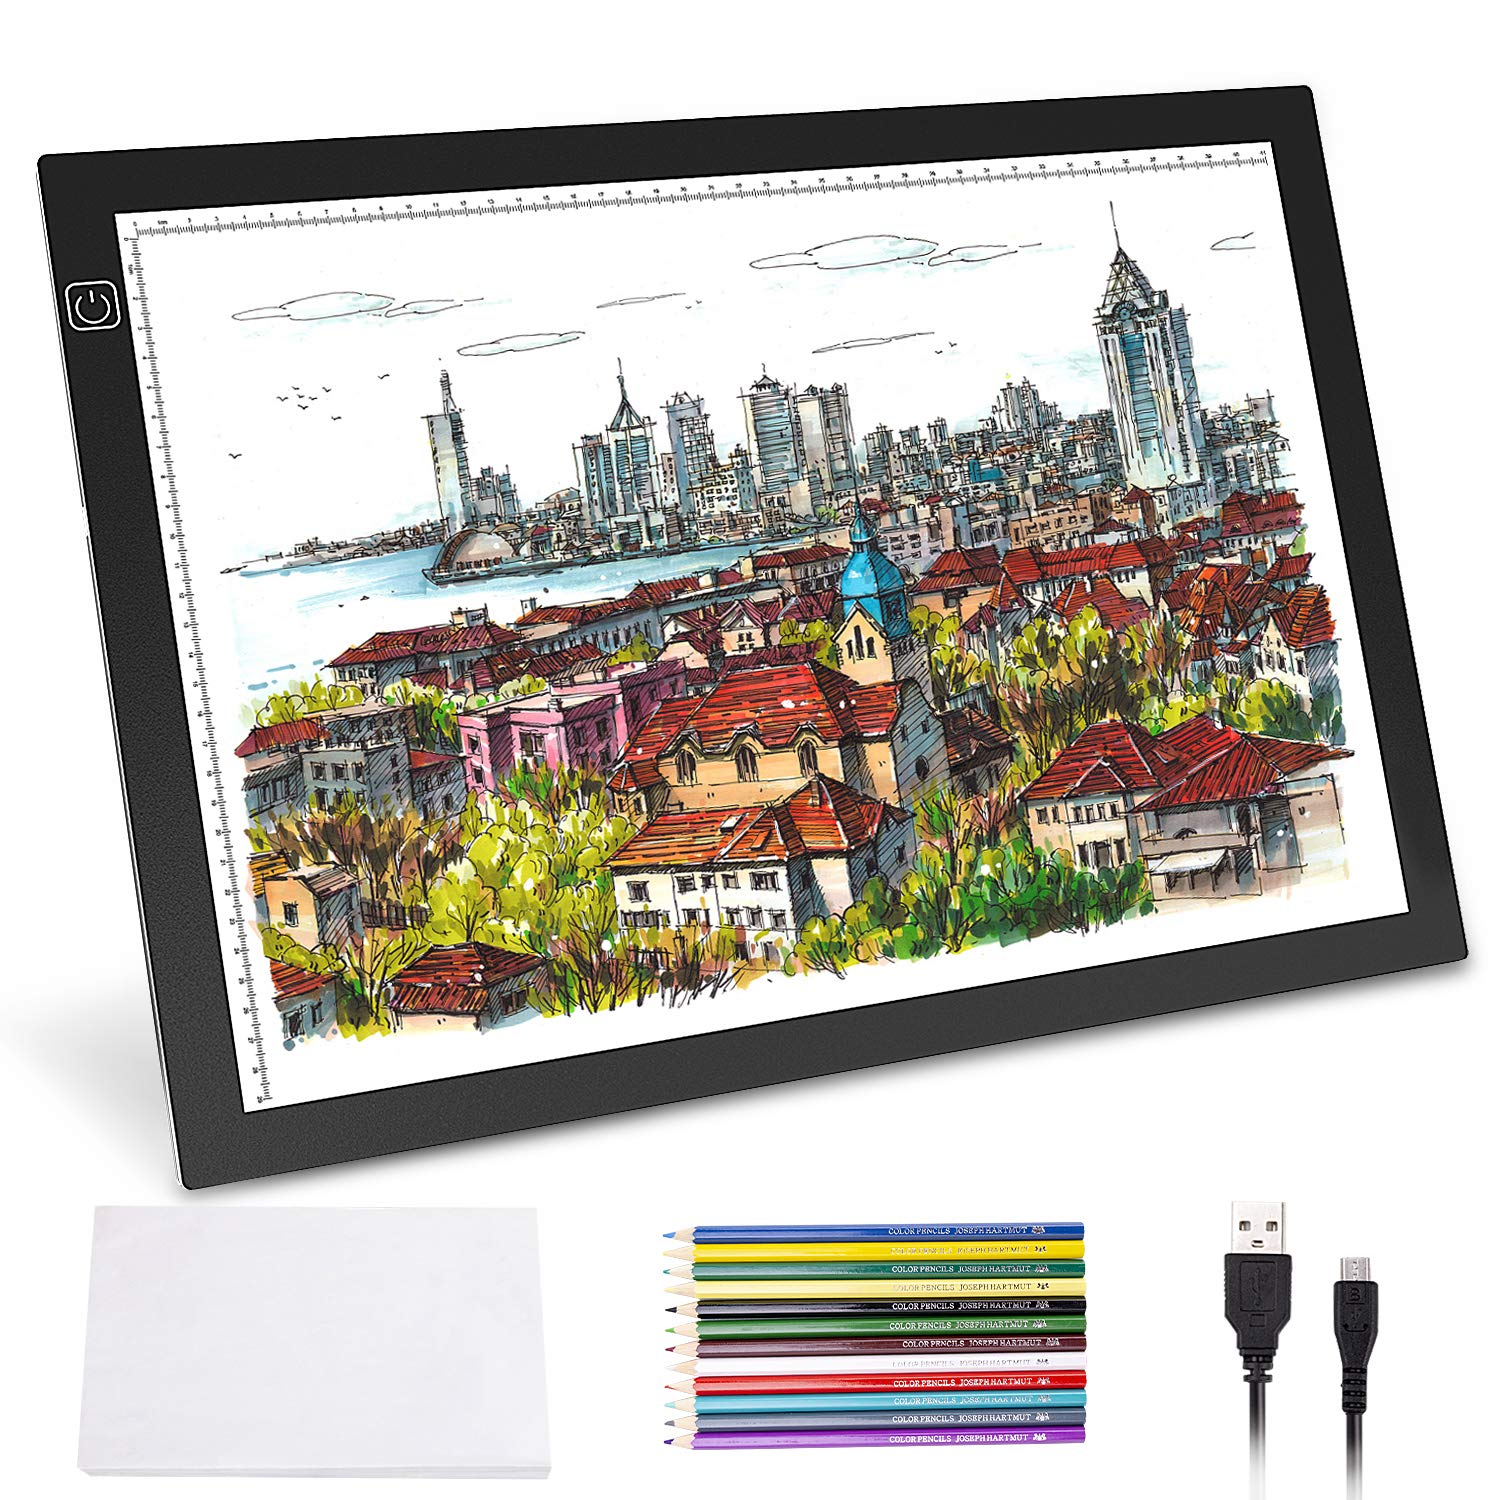 A3 Light Pad, Norbase Ultra-Thin Portable Tracing LED Copy Board Table, Adjustable USB Power Light Box Tracer for Drawing, Sketching, Animation, Stenciling, Calligraphy with 12 Color Pencils by Norbase